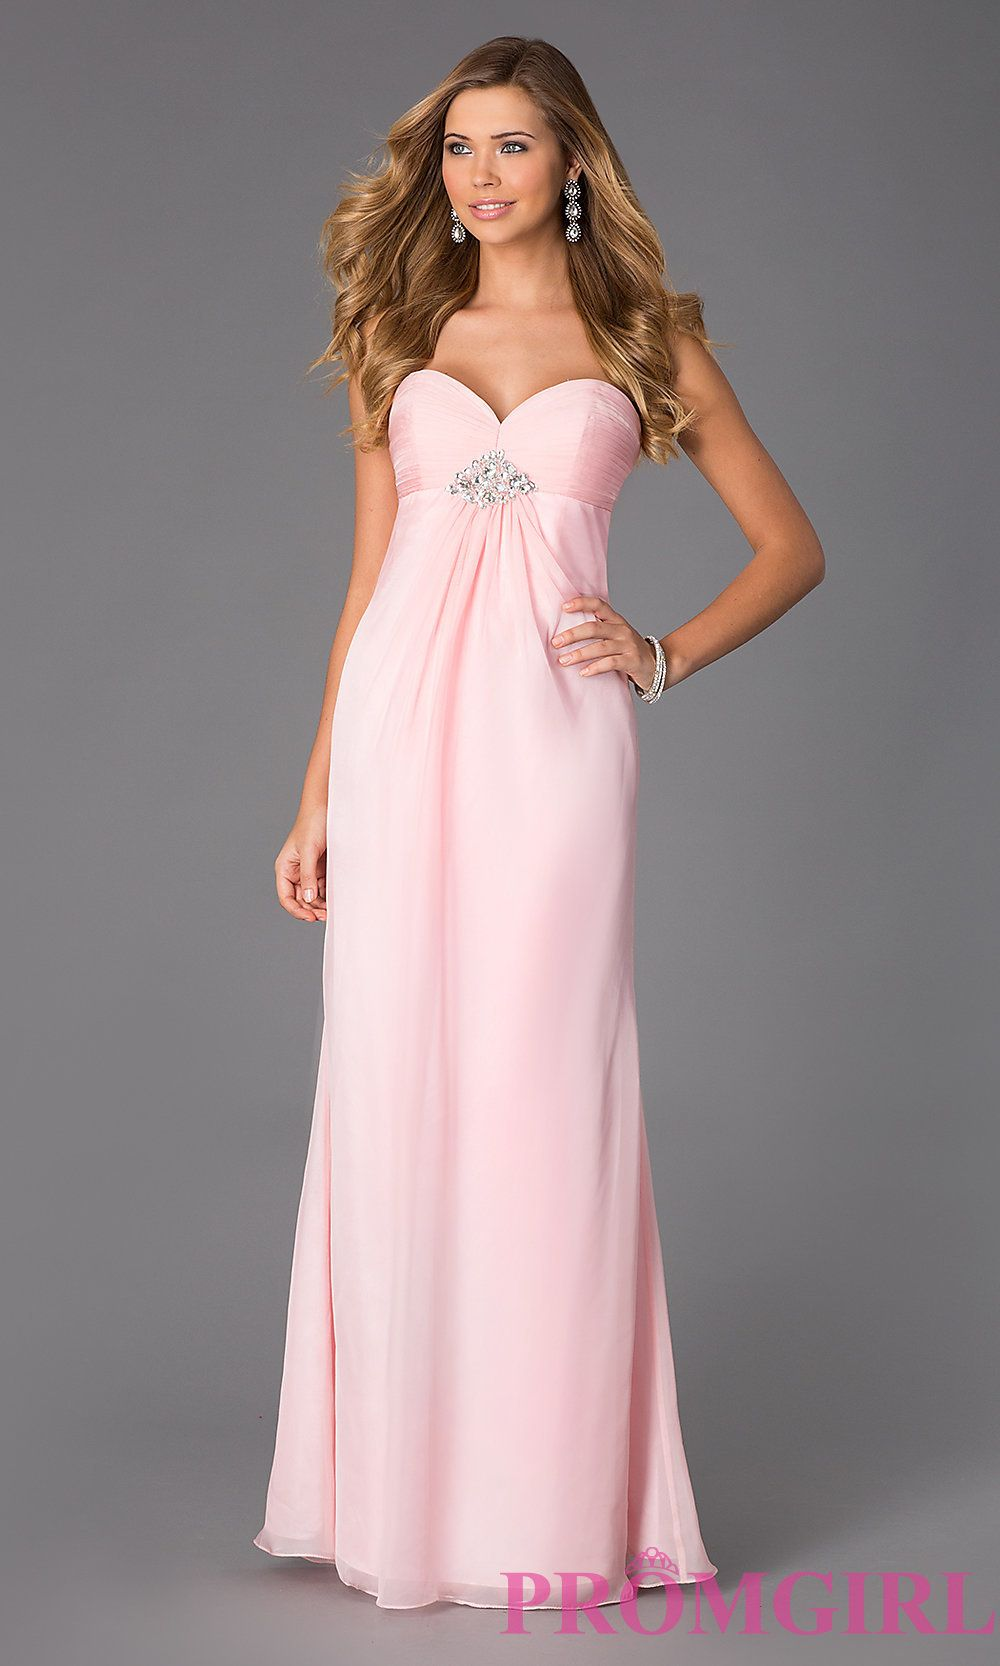 Alyce paris long prom dress al